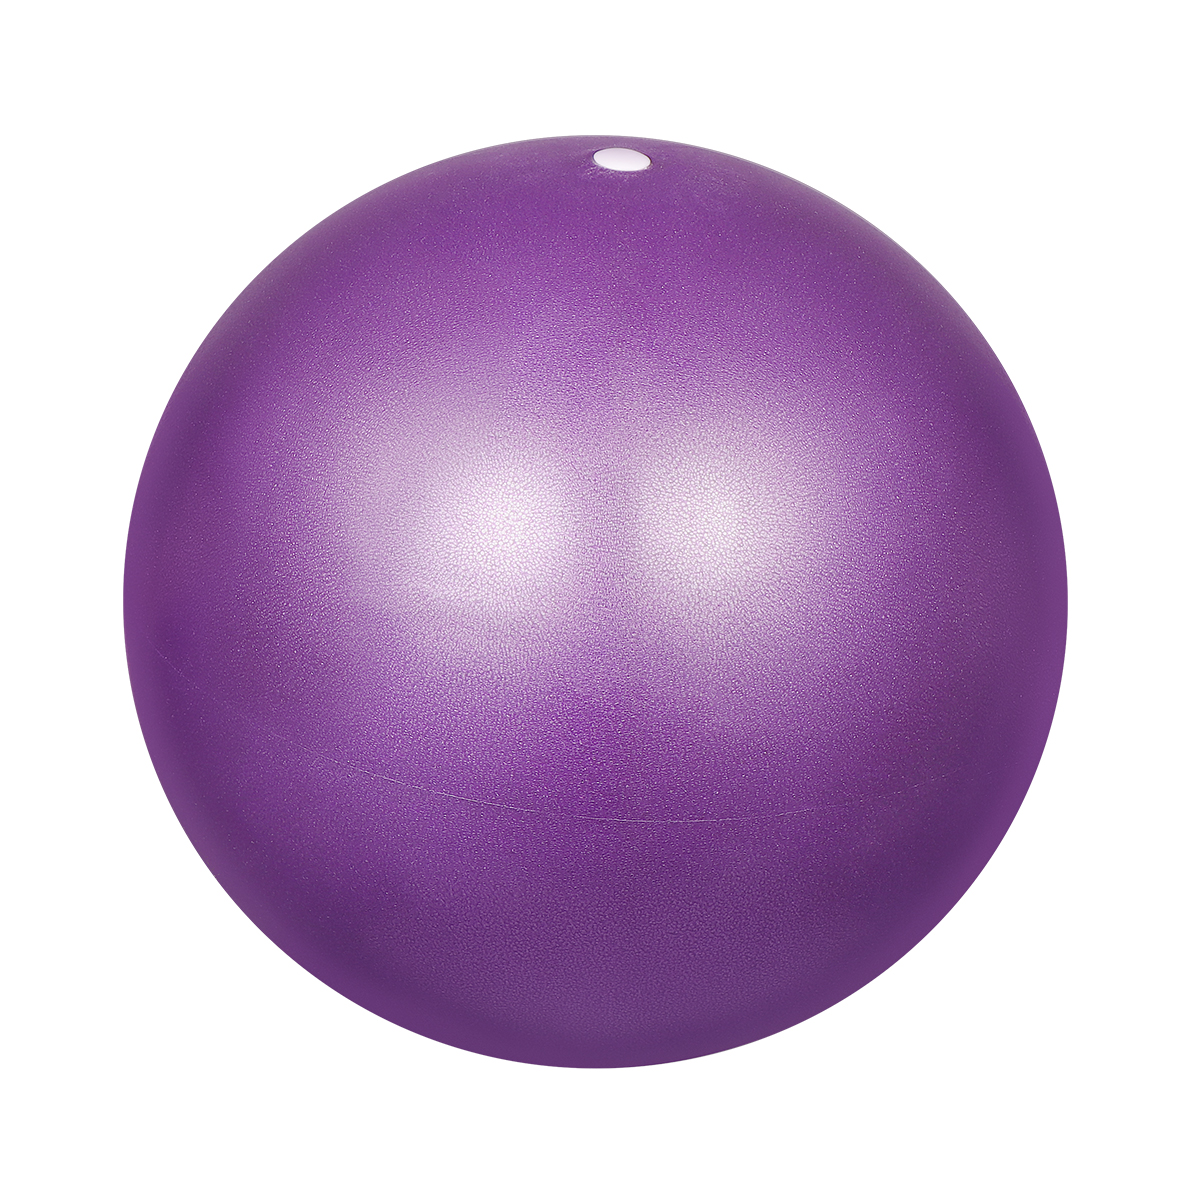 VORCOOL Yoga Pilates Ball Exercise Gymnastic Fitness Pilates Ball Balance Gym Fitness Yoga Core Ball Indoor Training Yoga Balls